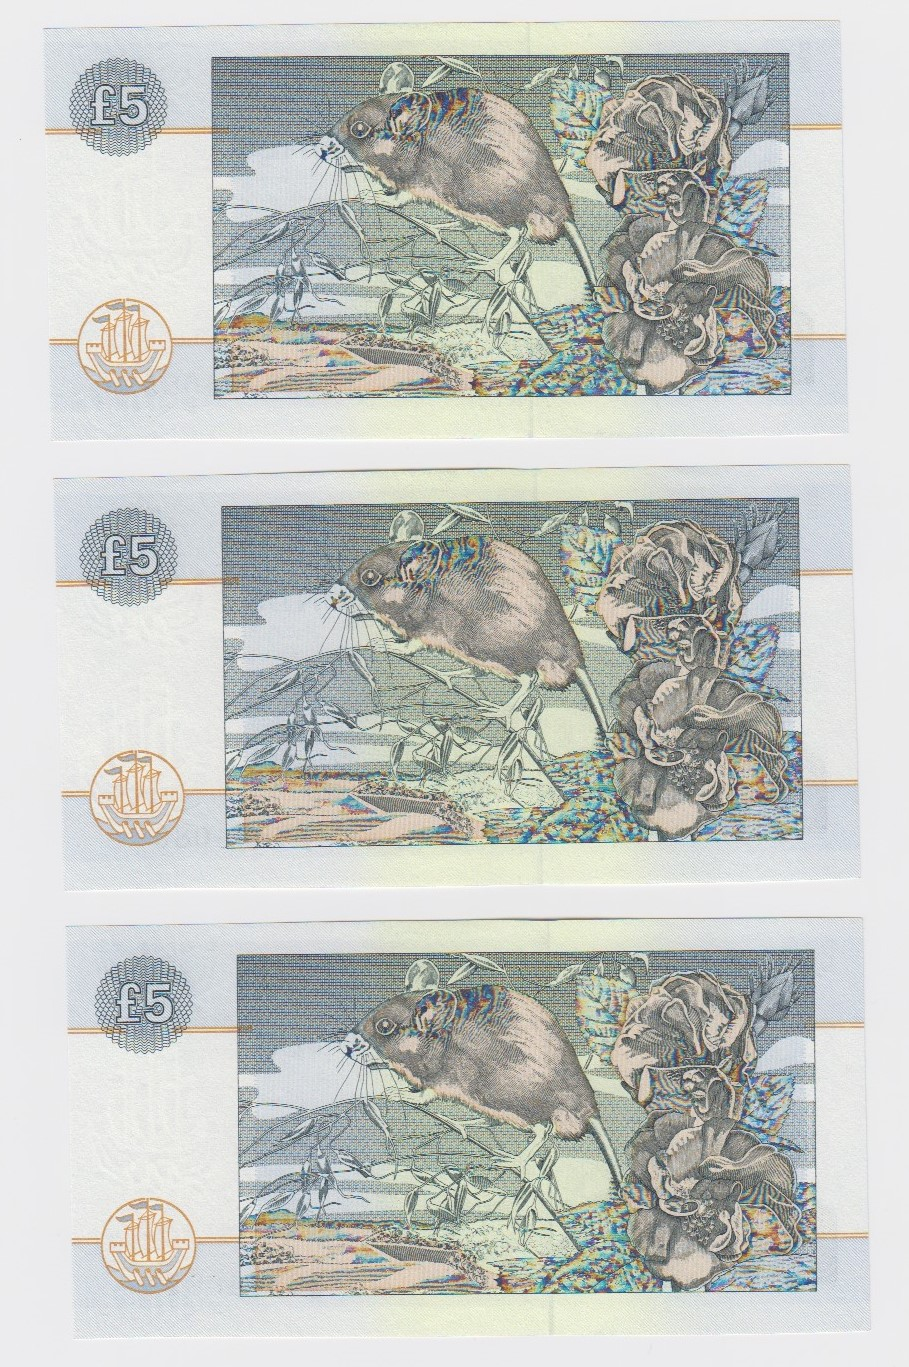 Scotland, Clydesdale Bank 5 Pounds (3) dated 21st July 1996, a consecutively numbered run - Image 2 of 2